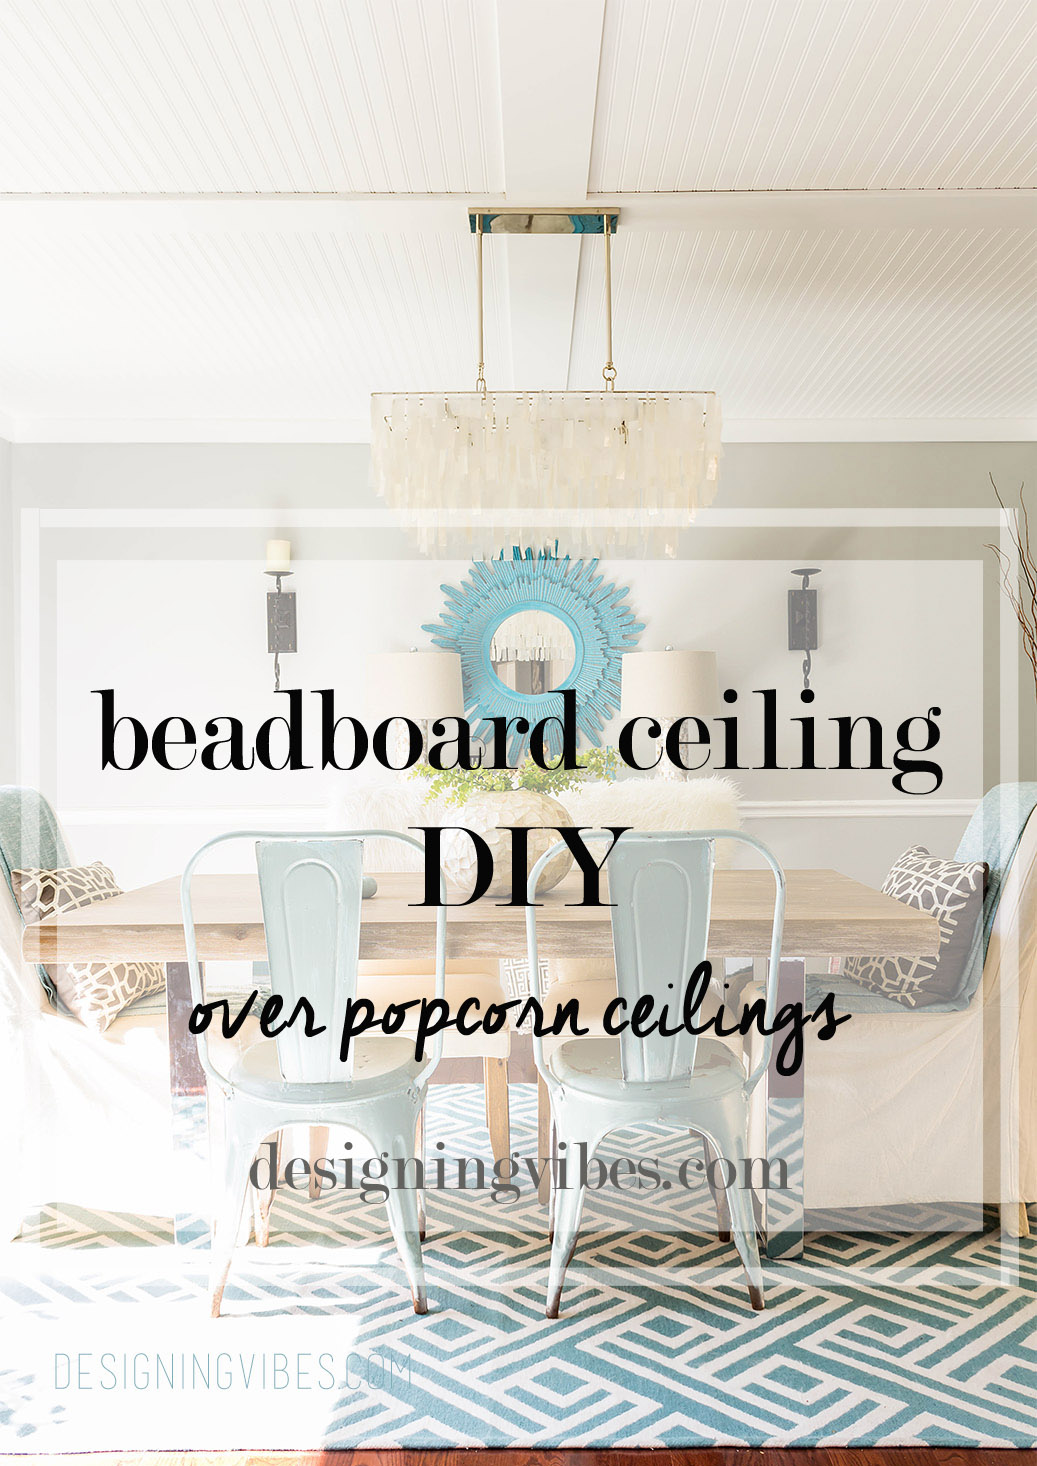 How To Cover Popcorn Ceiling With Beadboard Planks DIY Tutorial - Can you put beadboard over popcorn ceiling